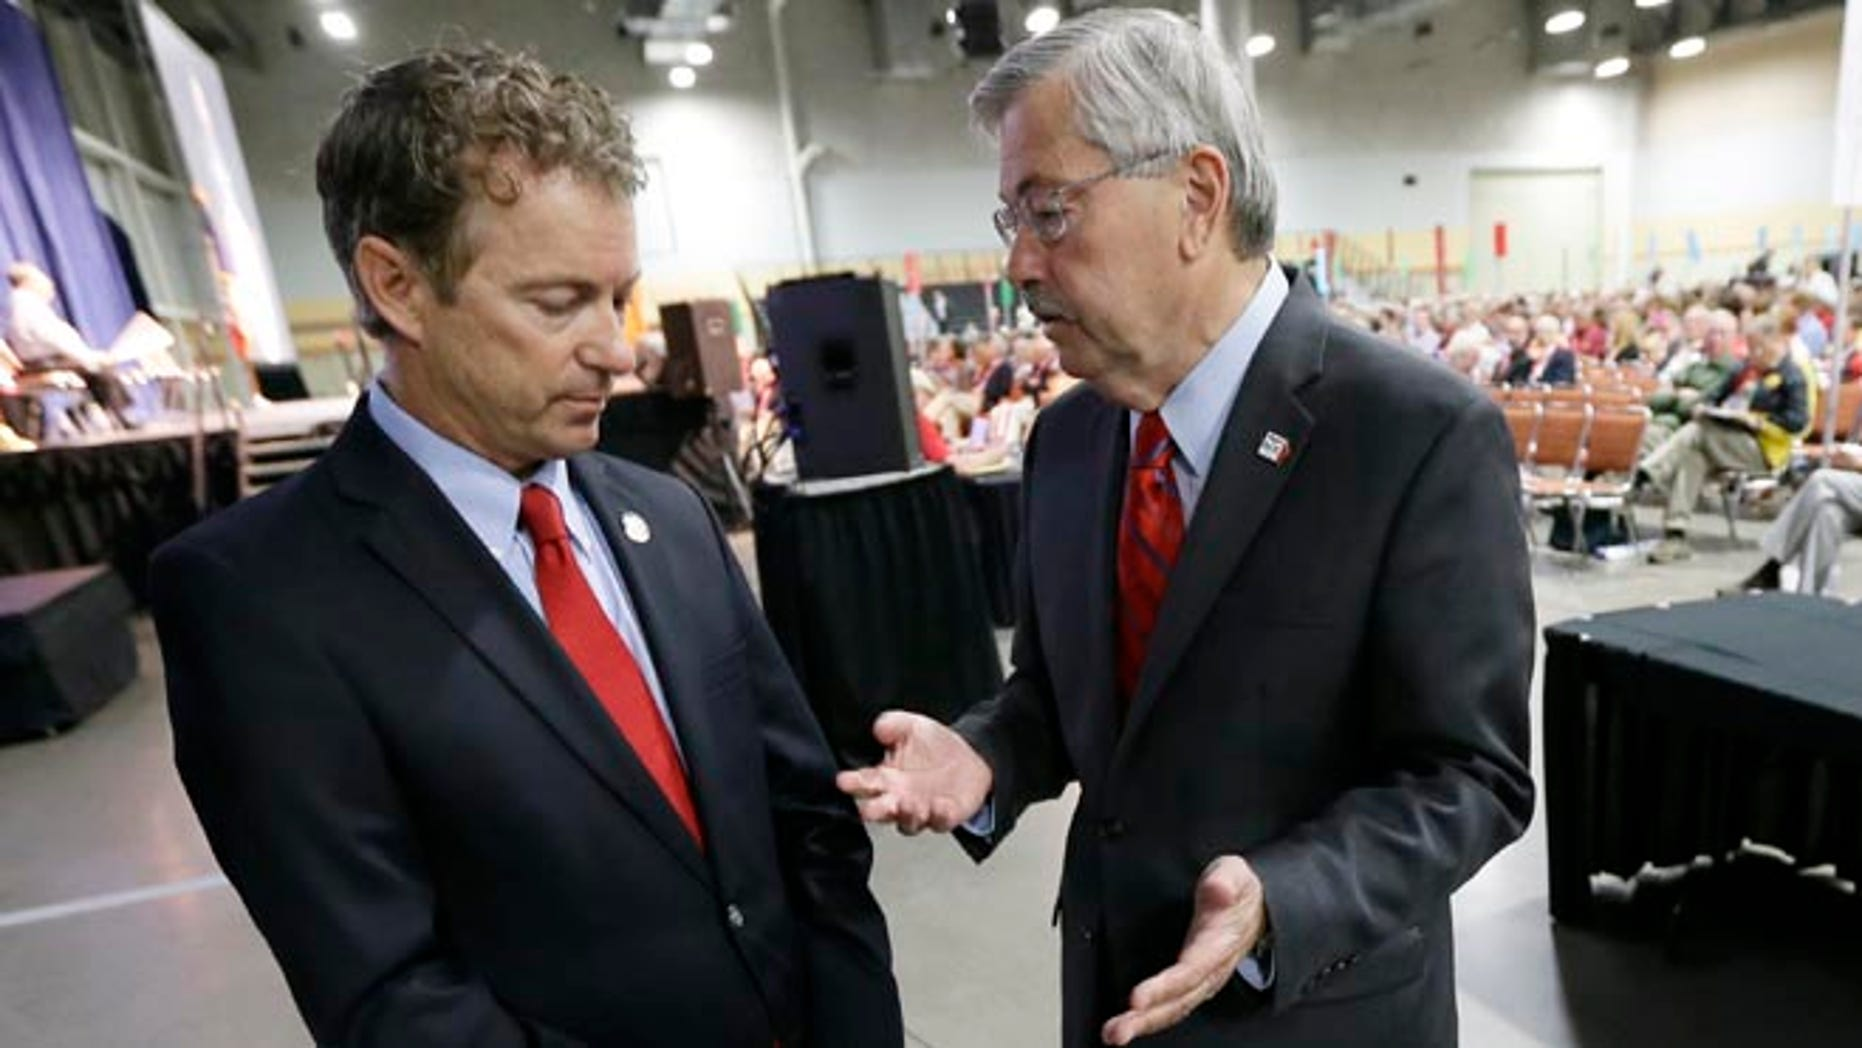 June 14, 2014: Iowa Gov. Terry Branstad, right, talks with Sen. Rand Paul, R-Ky., during the Iowa State Republican Convention in Des Moines, Iowa.